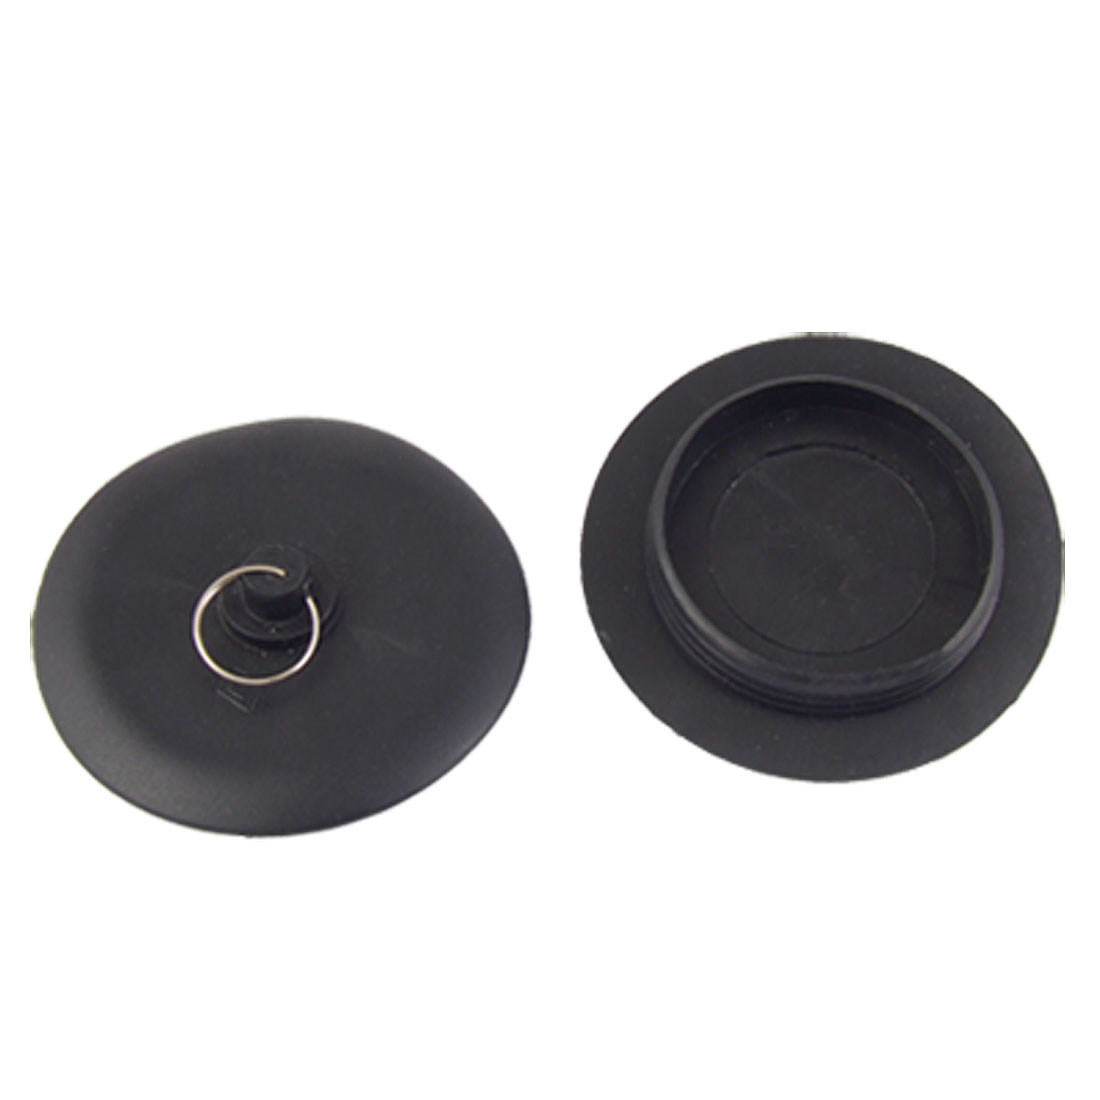 2 Pcs Black Rubber Stopper Bathtub Sink Wash Basin Plug